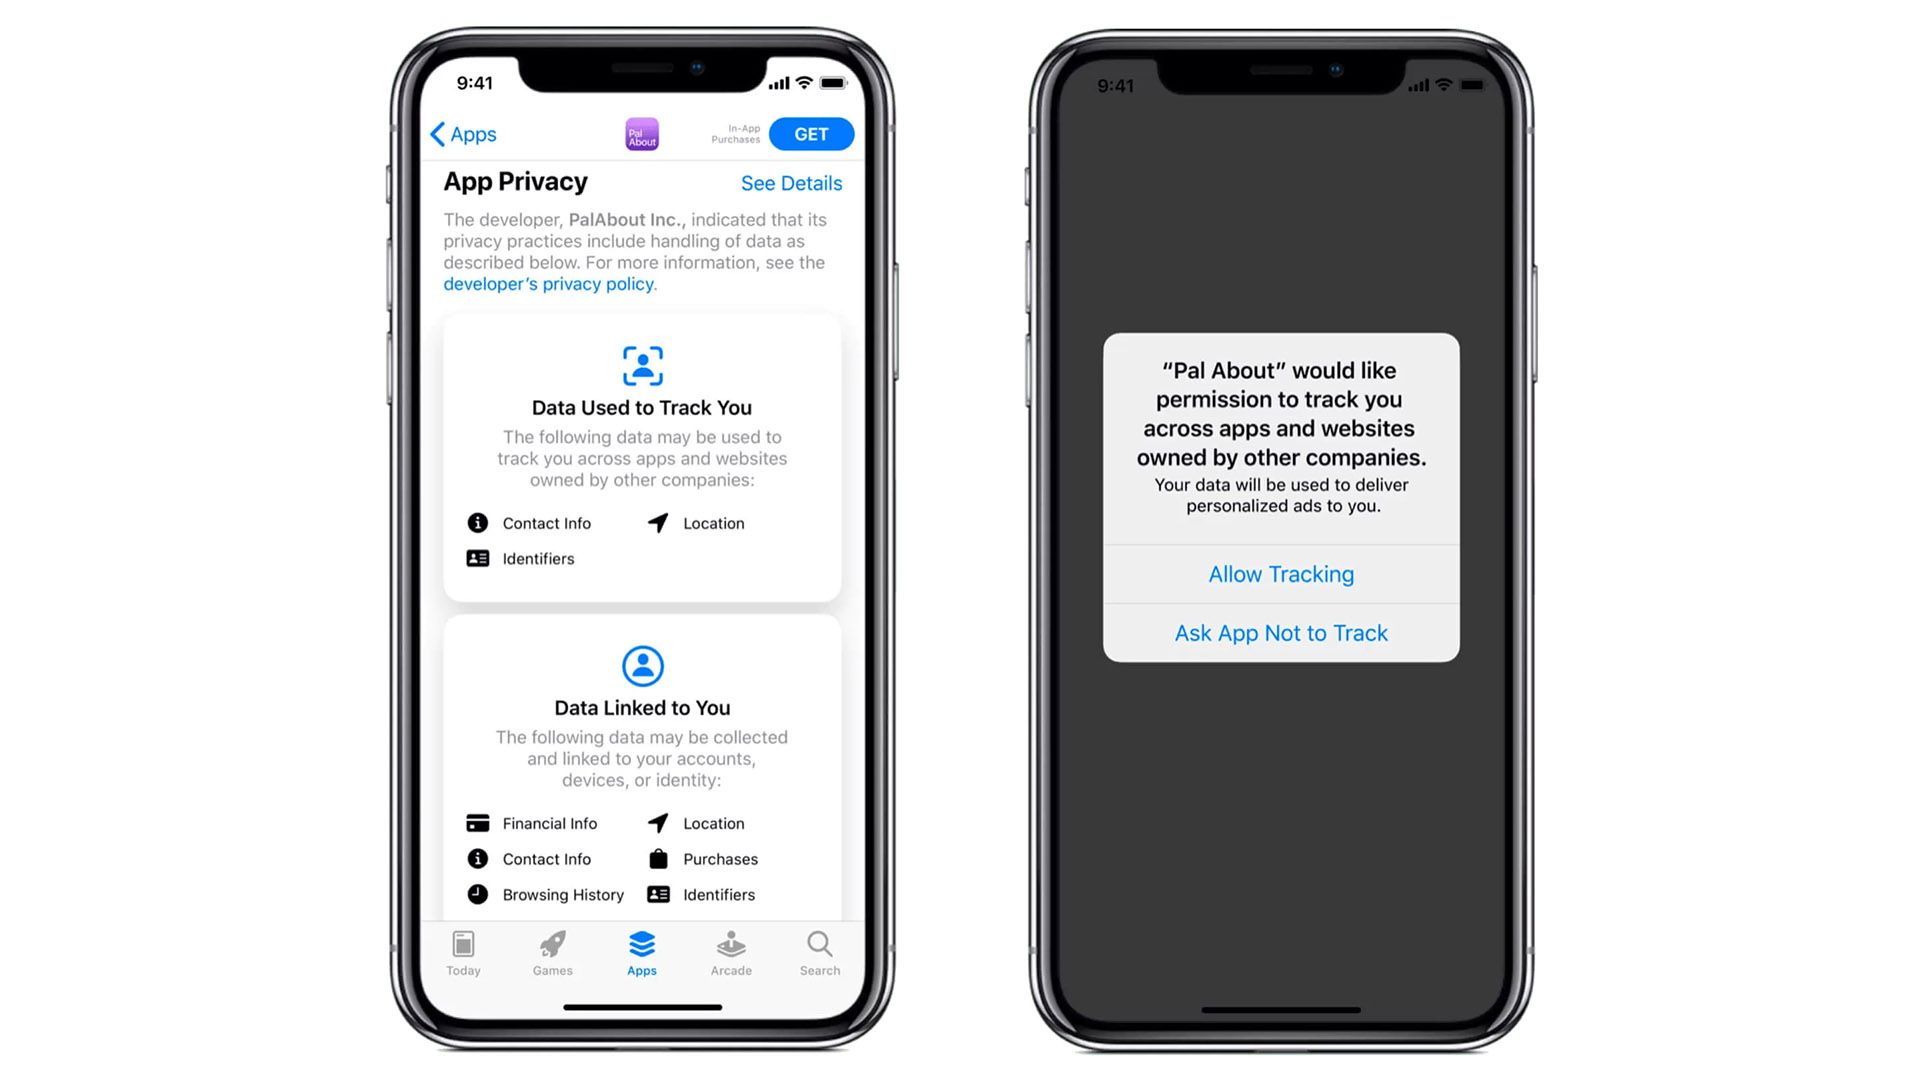 App tracking prompts on an iPhone.